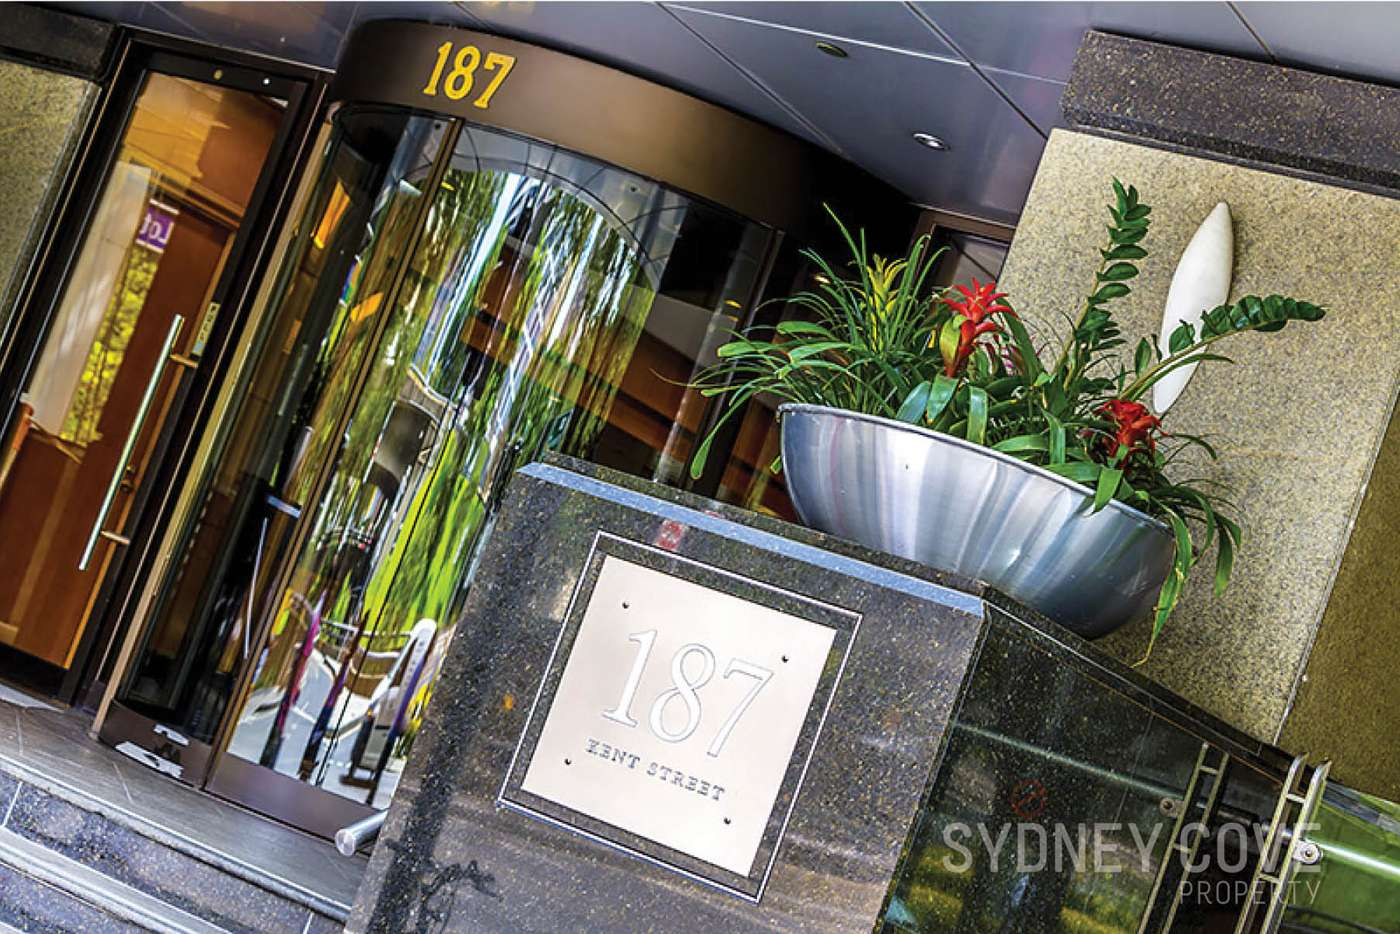 Seventh view of Homely apartment listing, 183 Kent Street, Sydney NSW 2000